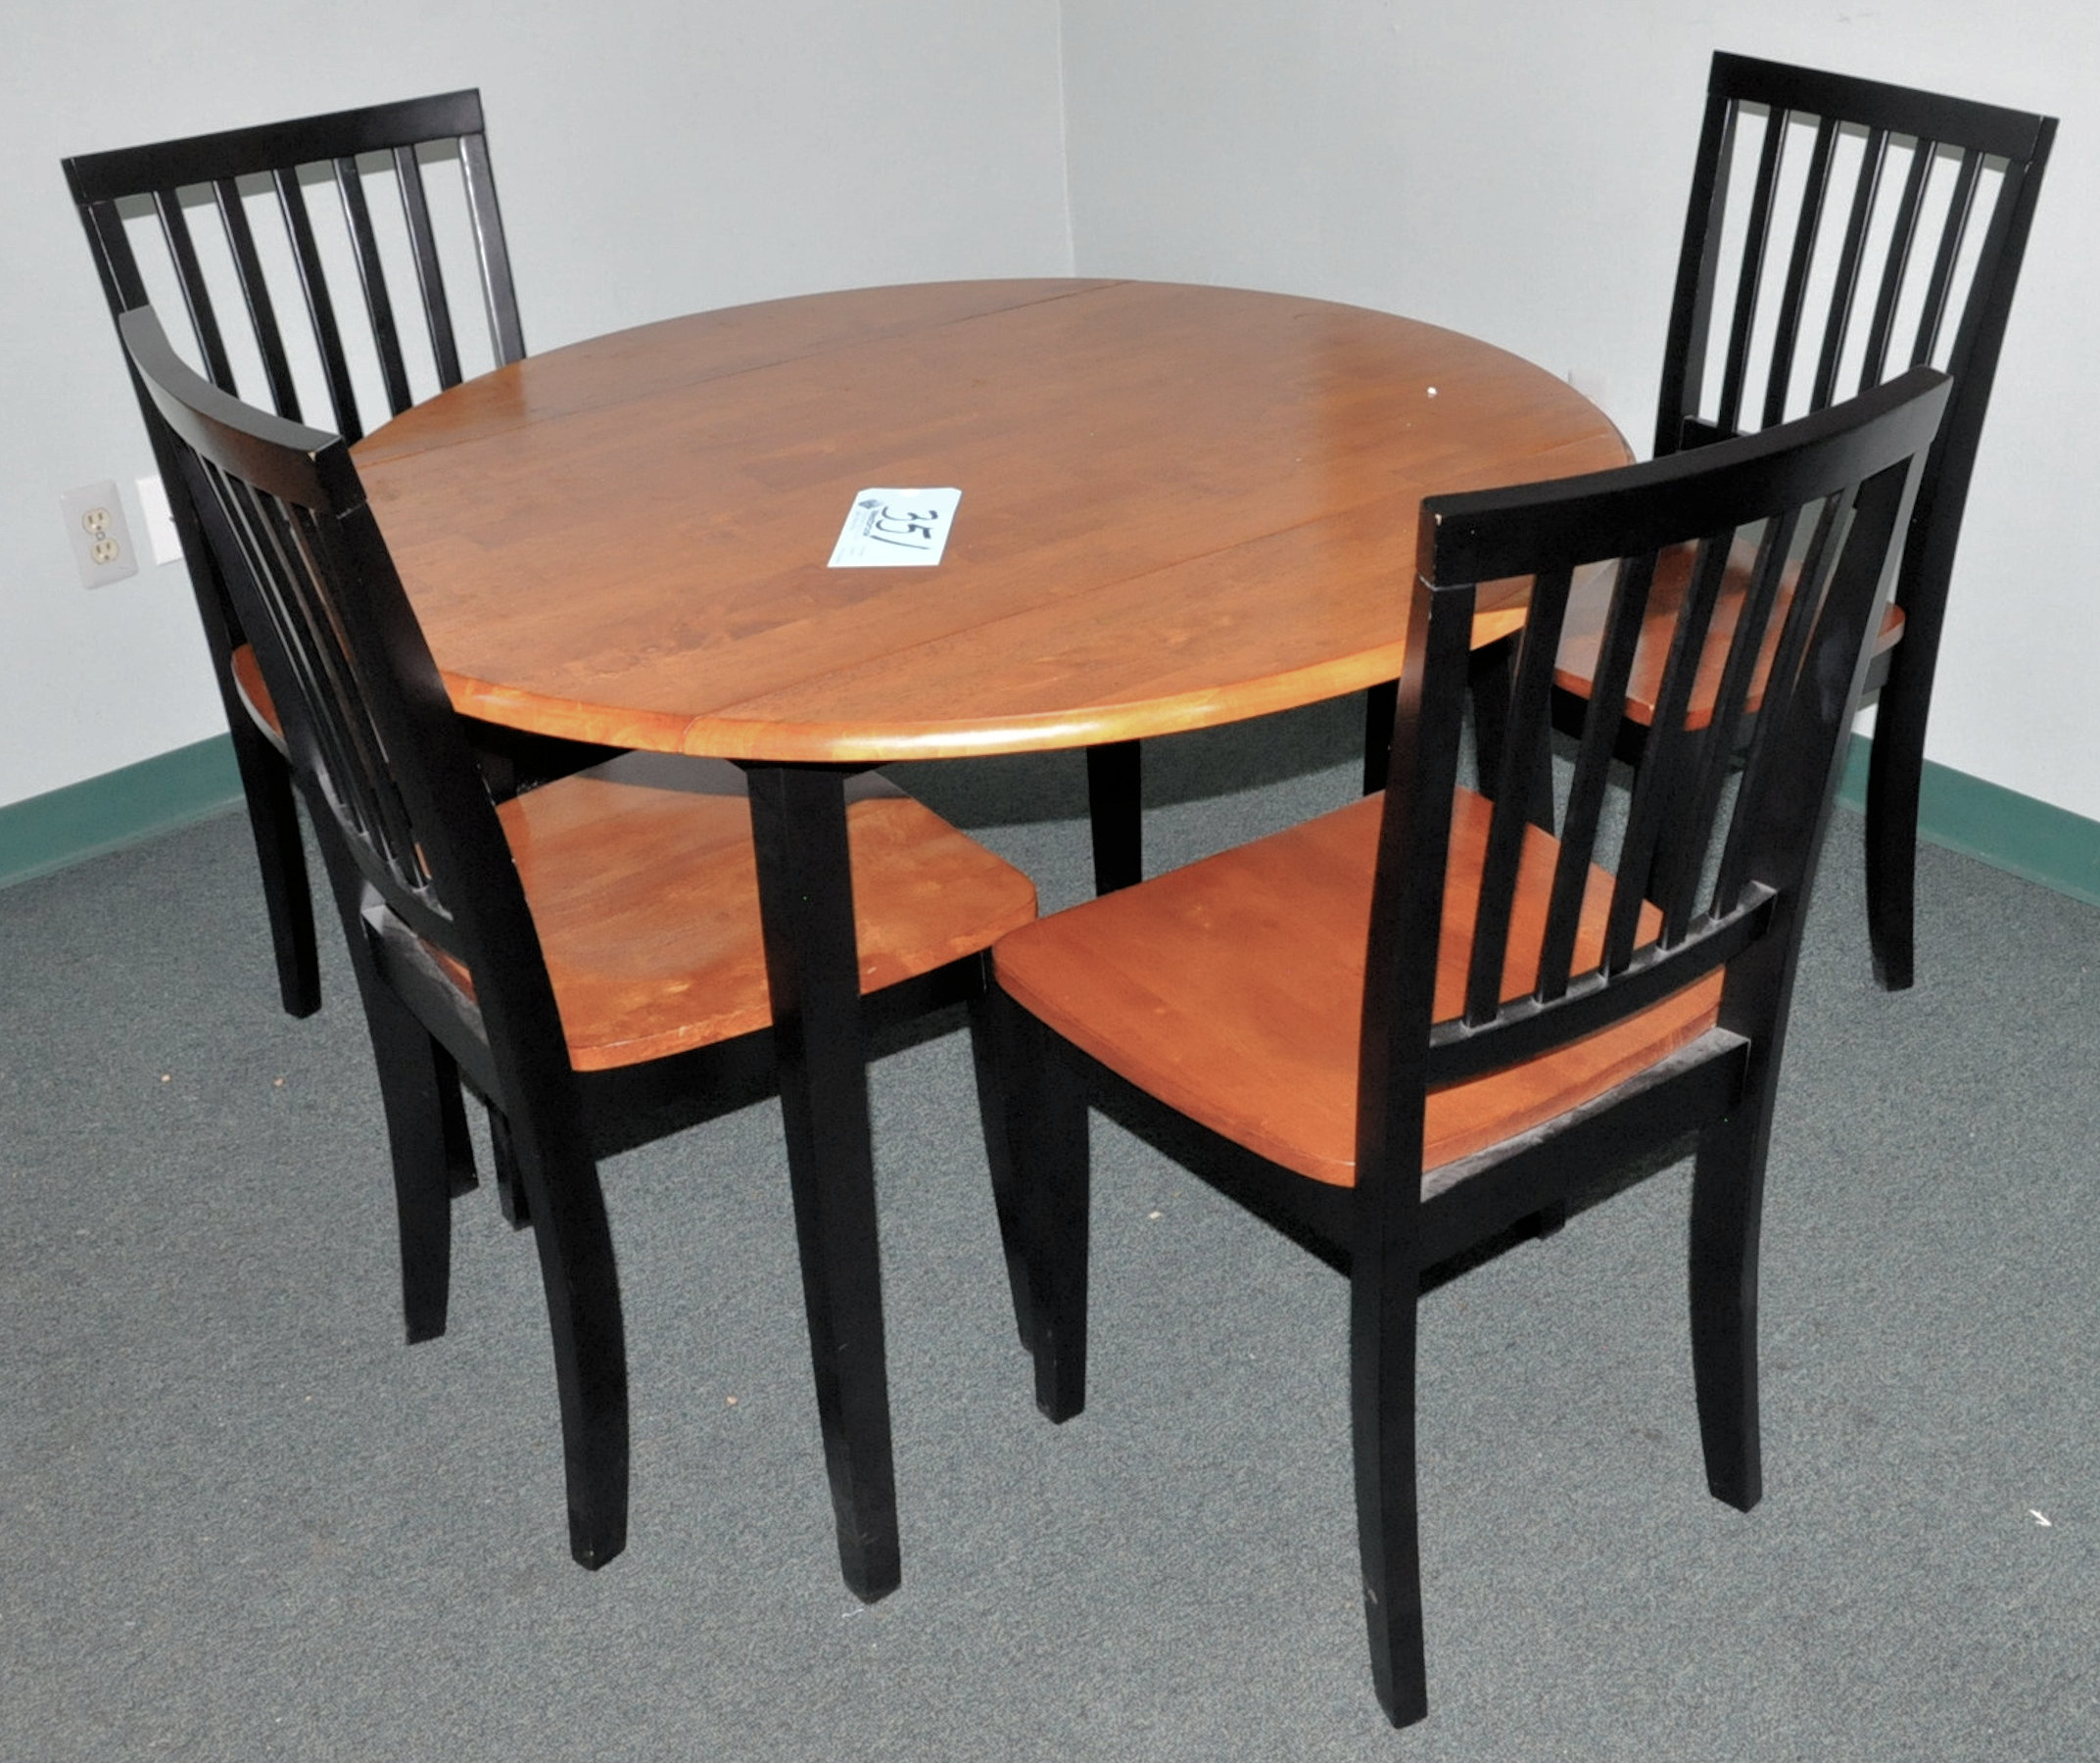 Lot-(2) Desks, Table, (5) Chairs, Pedestal Stand, Dry Erase Board and (2) Wall Prints (No contents) - Image 2 of 3